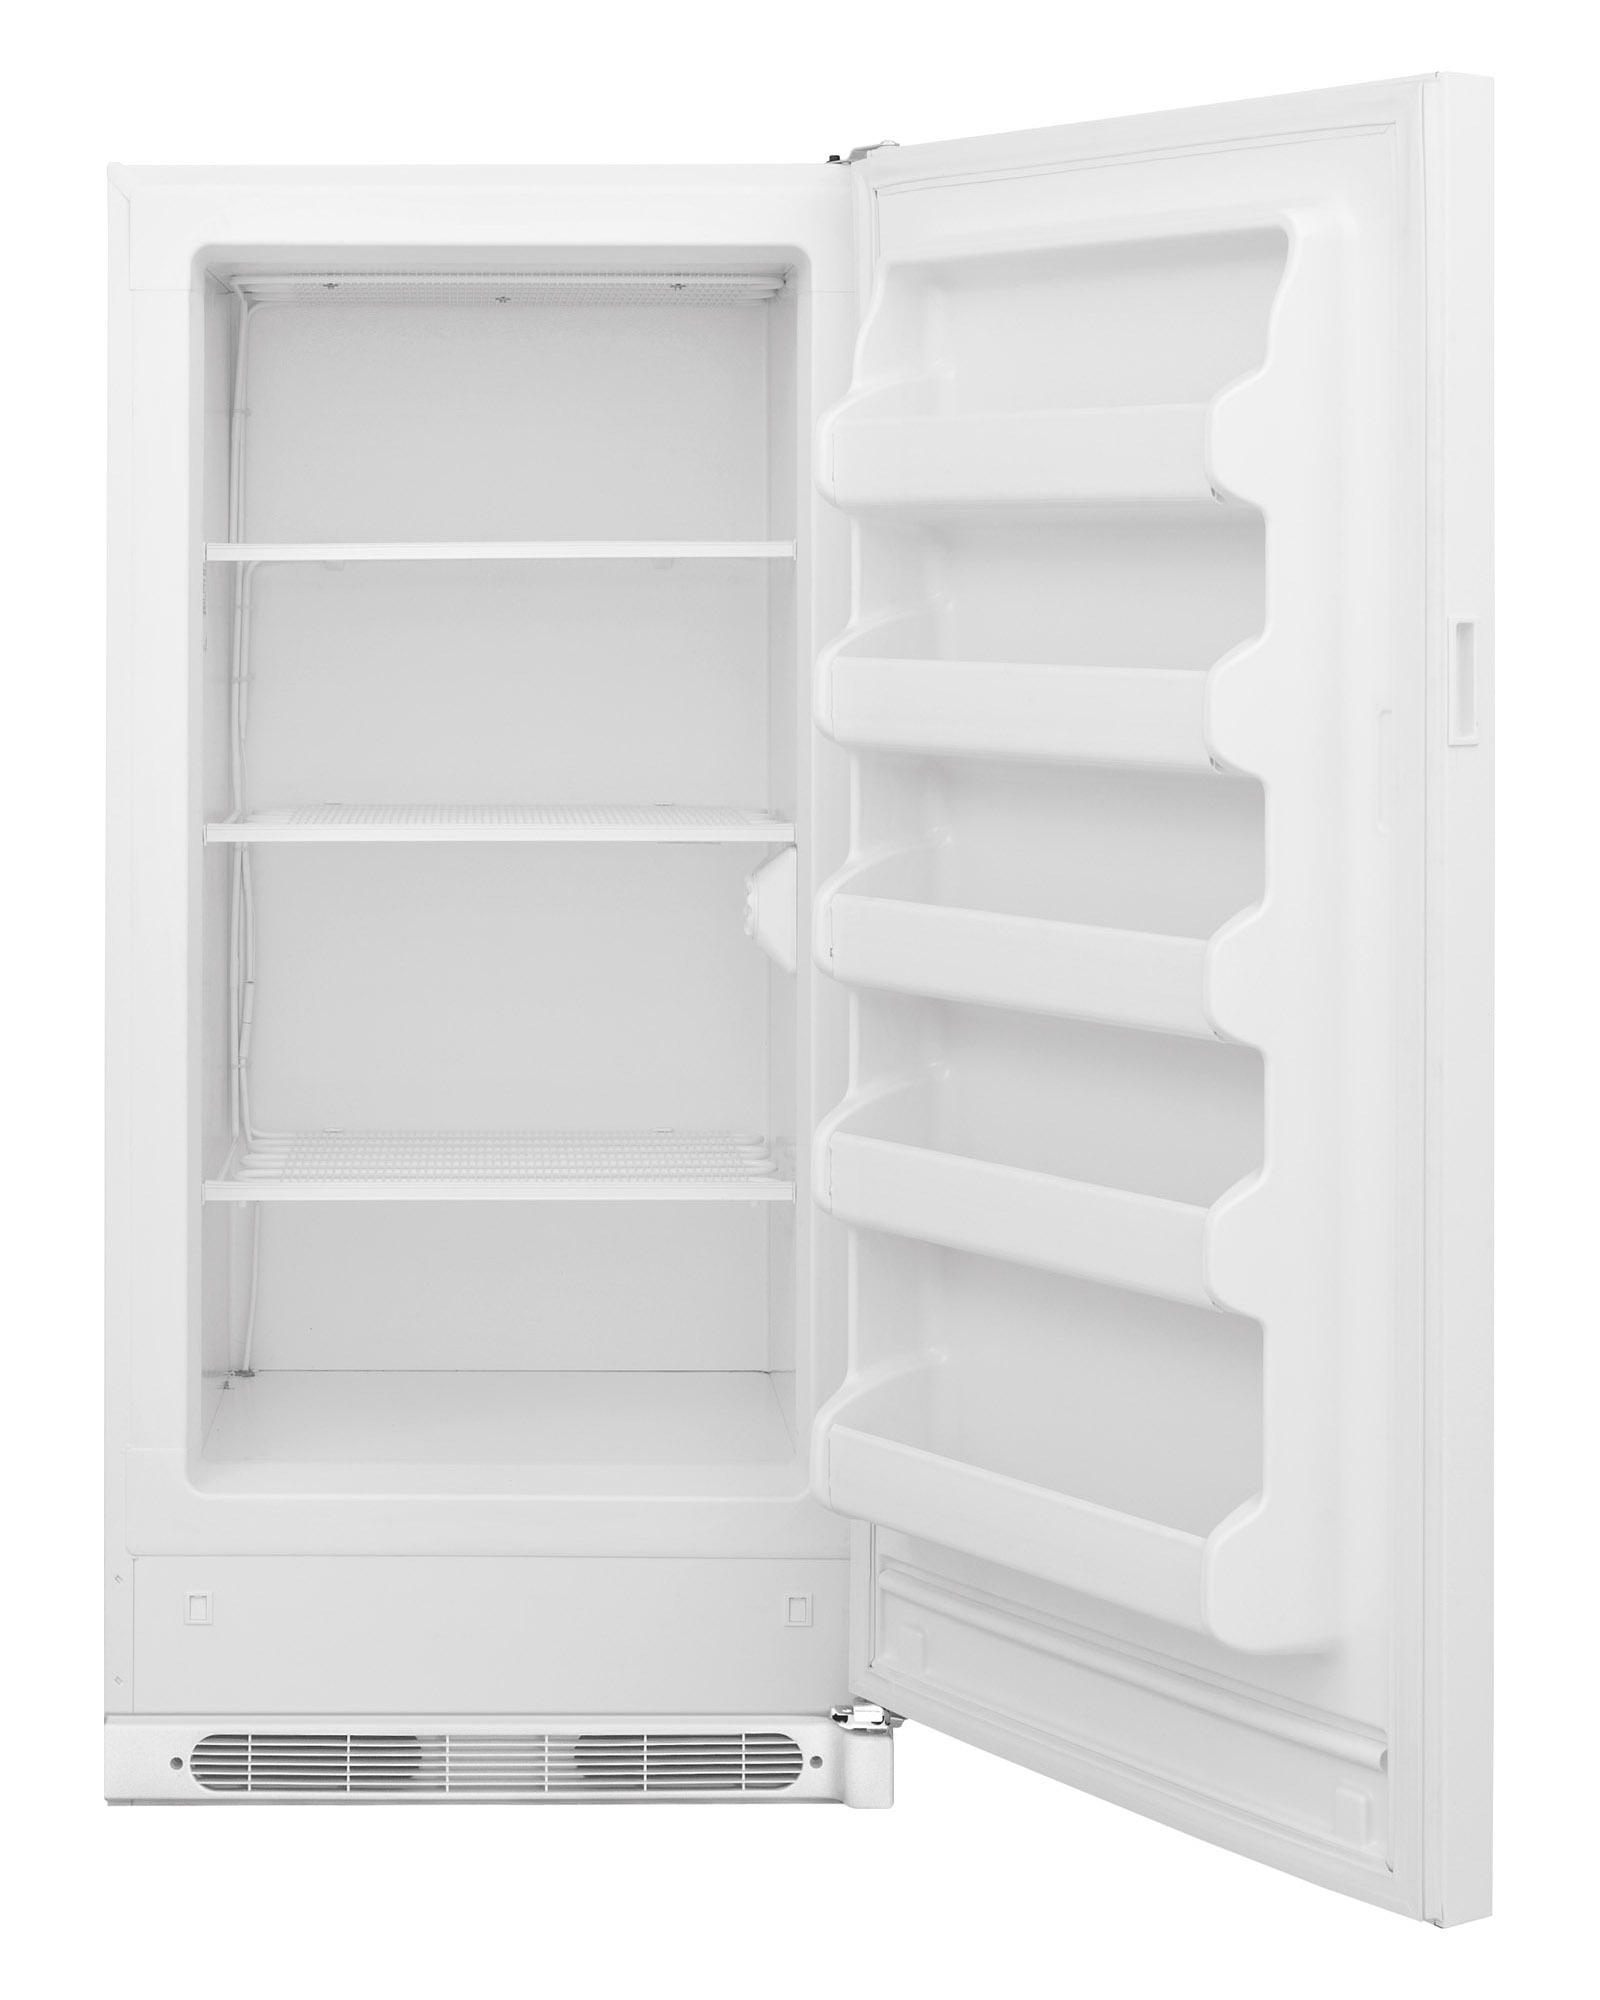 Frigidaire FFFU13M1QW 12.8 cu. ft. Upright Freezer - White